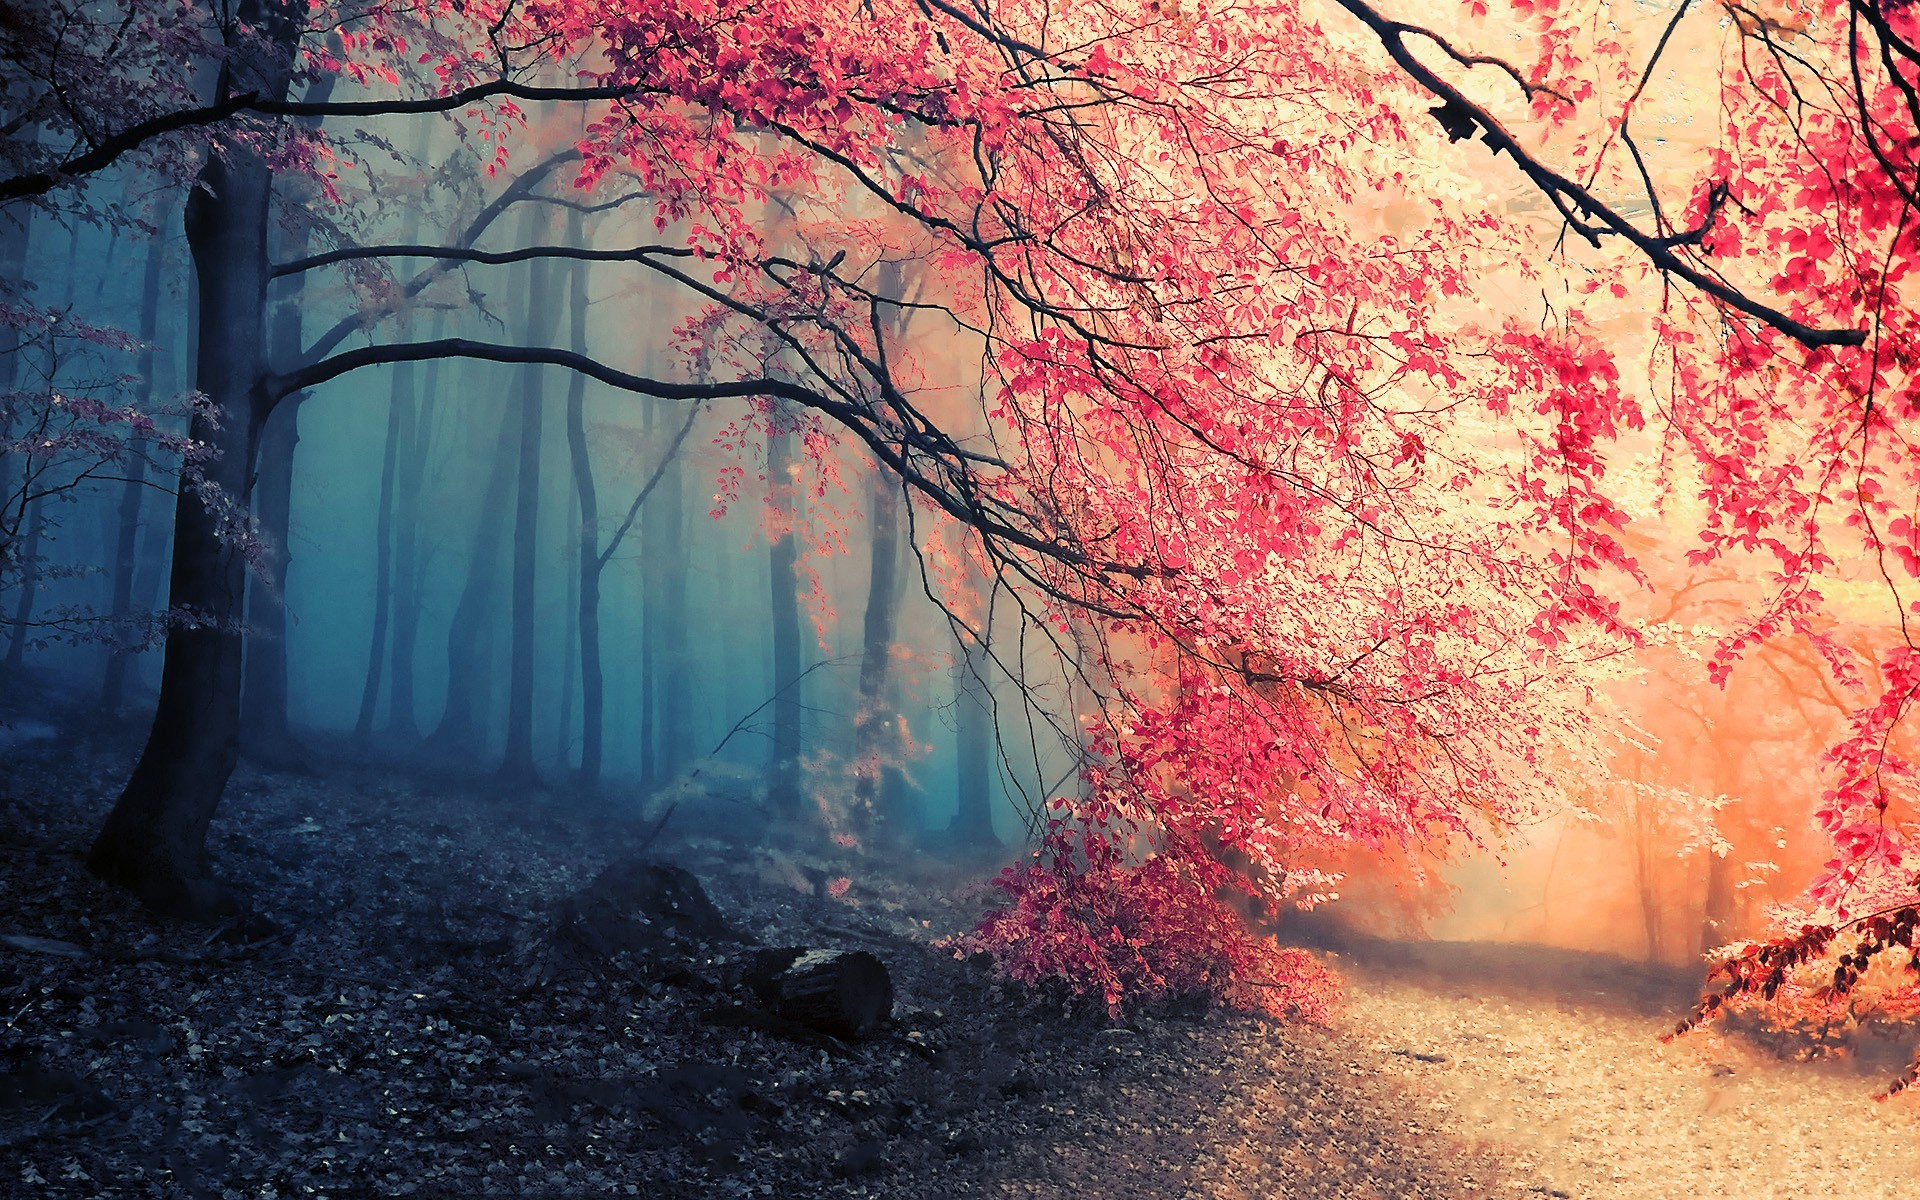 Res: 1920x1200, HD Wallpaper | Background Image ID:411820